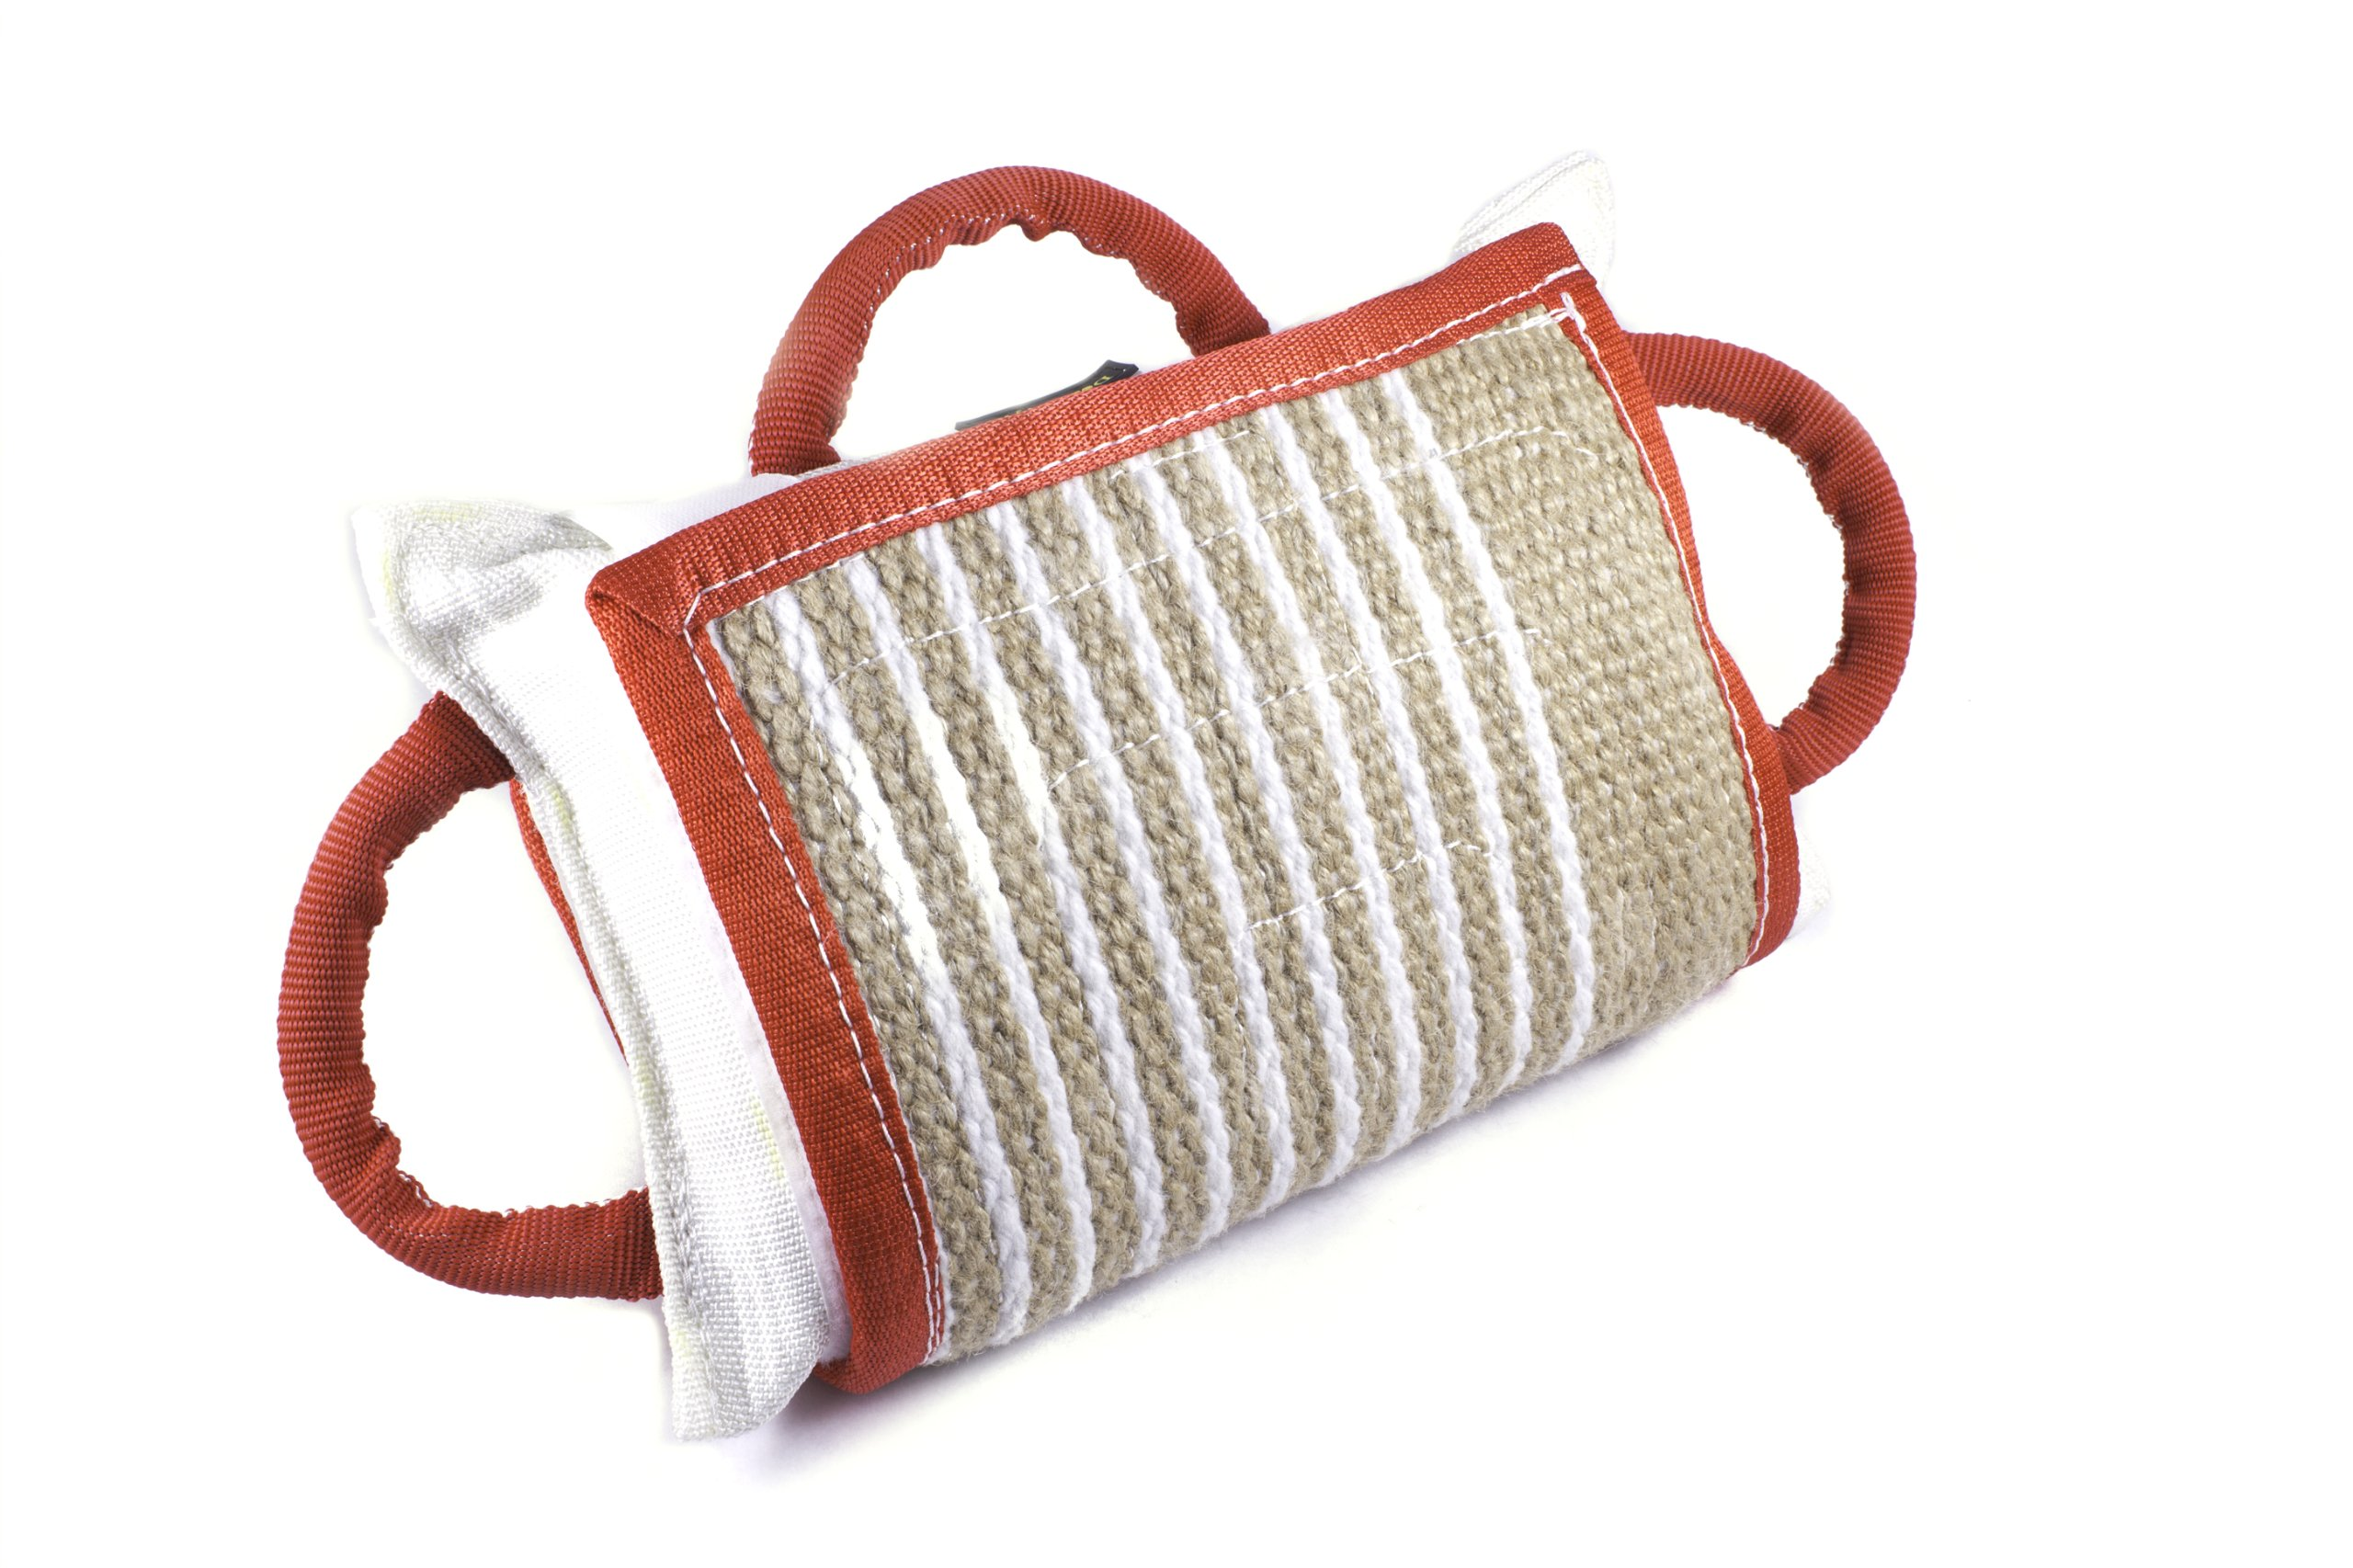 Dean & Tyler Pro Bite Natural Color Jute, Wide Pad Collar, 14.5 by 9.5-Inch